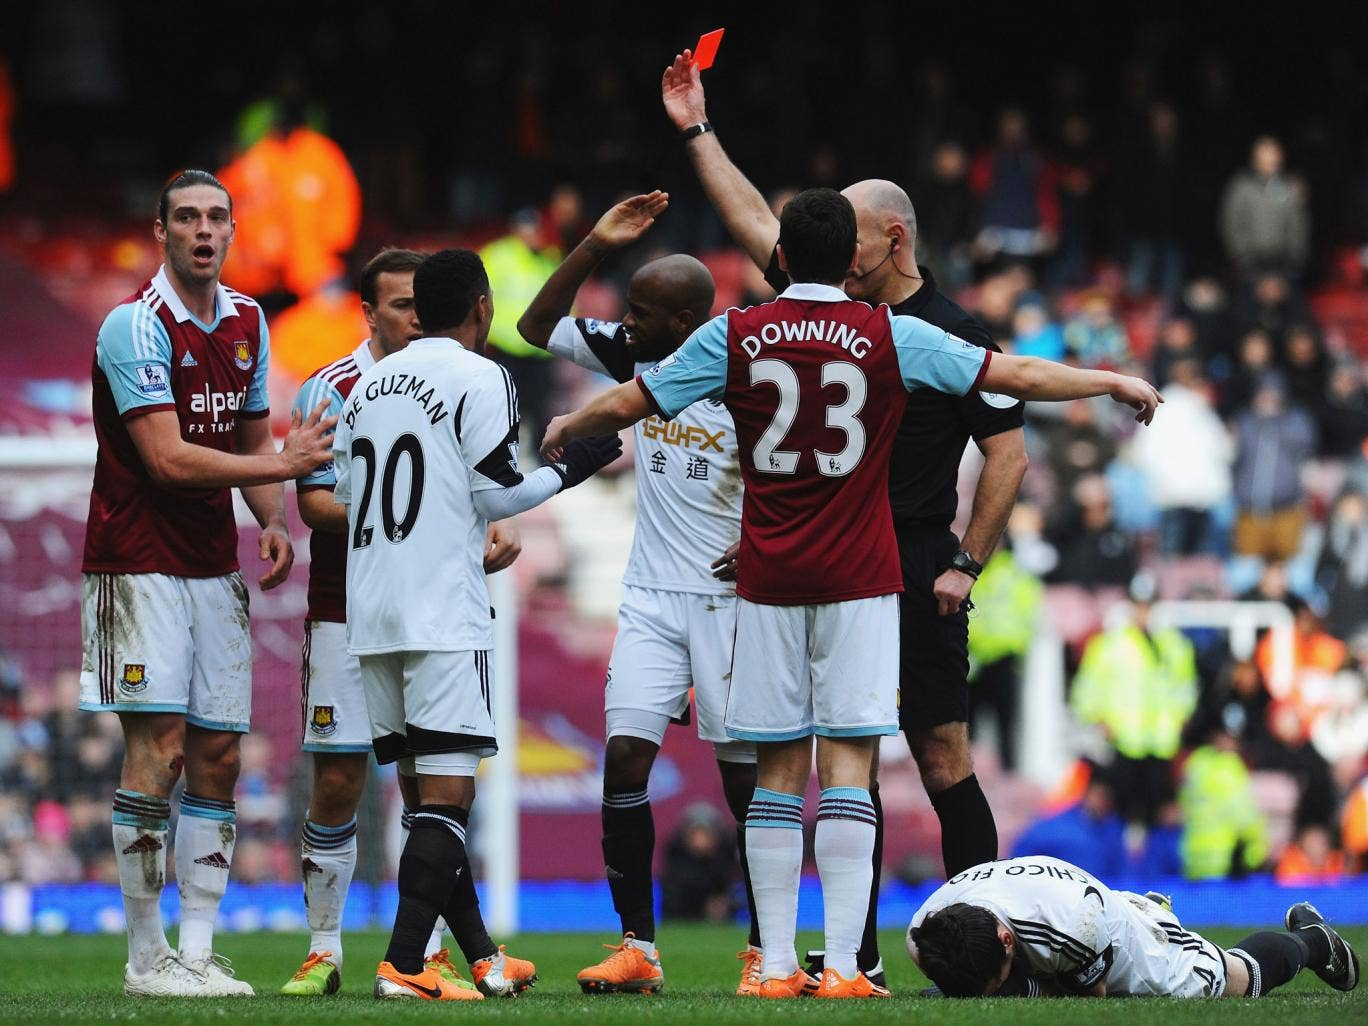 West Ham striker Andy Carroll is shown a red card